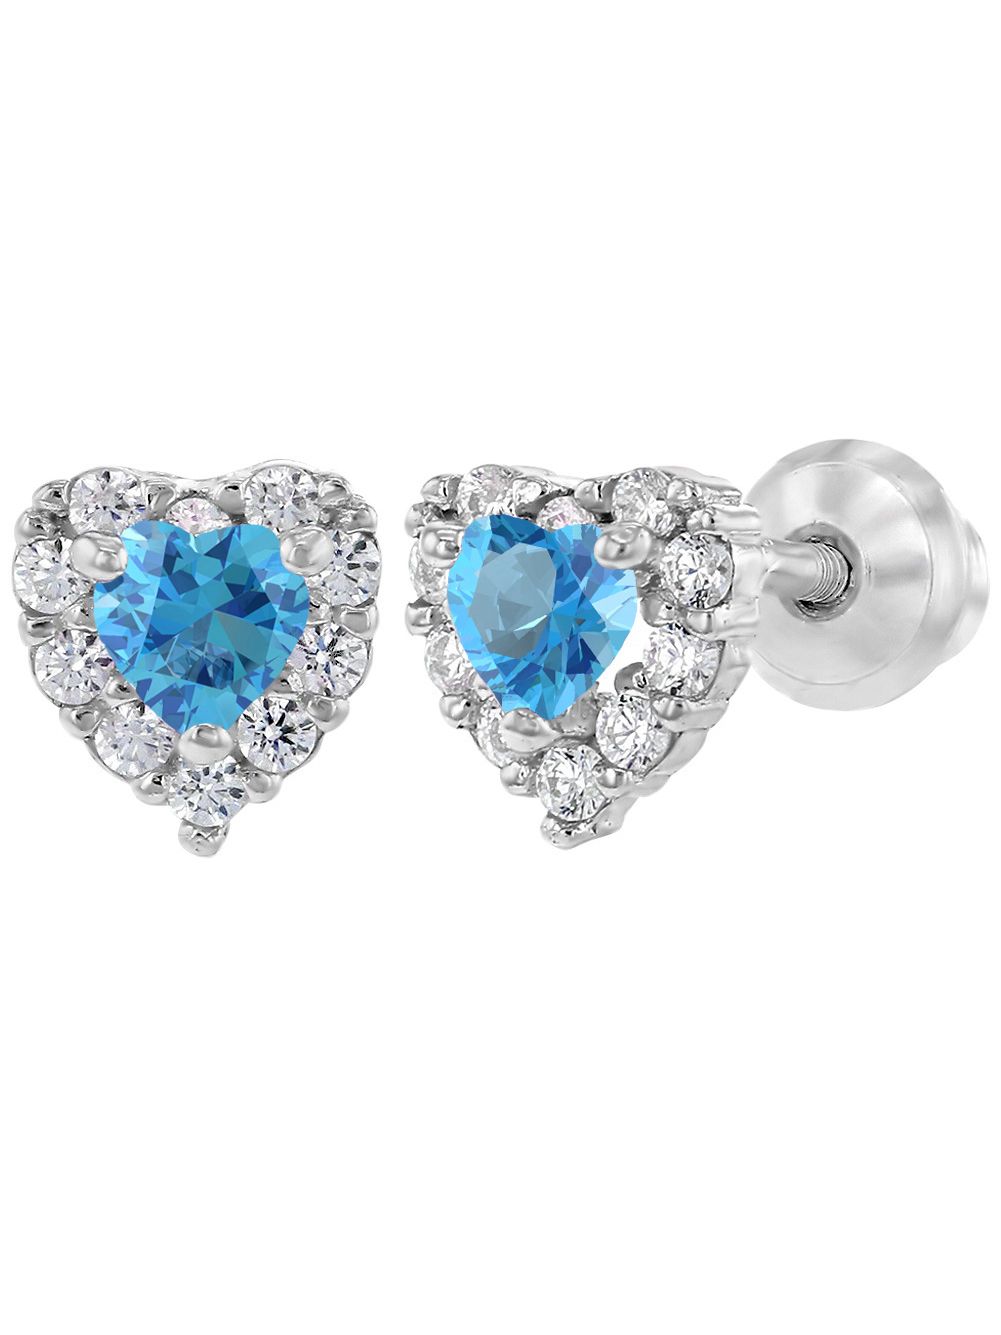 In Season Jewelry 925 Sterling Silver Clear CZ Heart Screw Back Baby Girl Earrings Infants